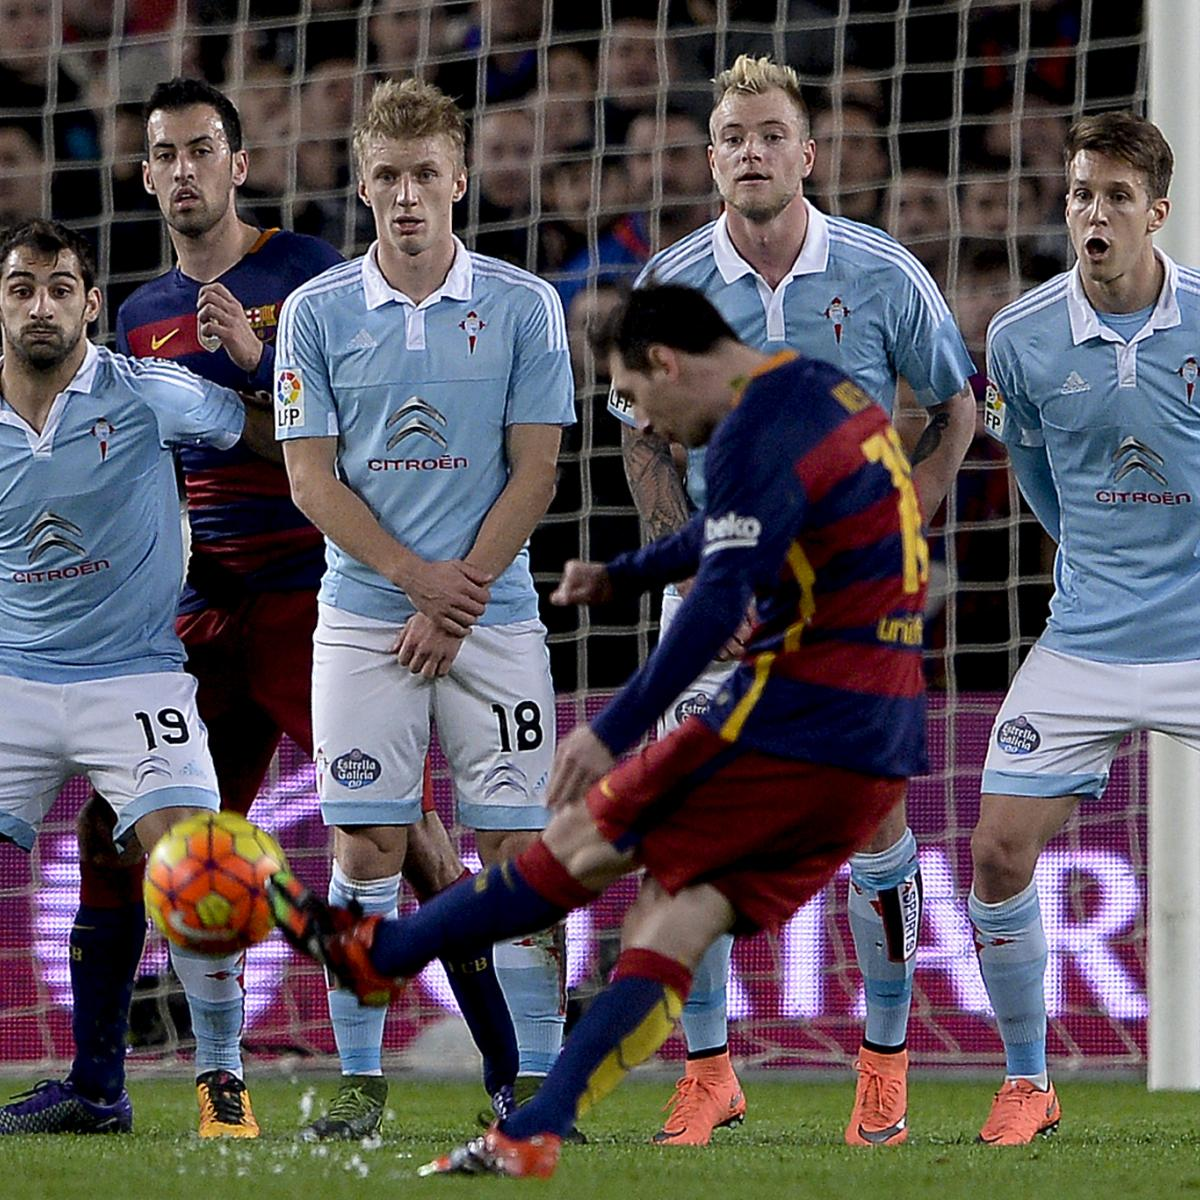 Celta Vigo Vs Barcelona Direct: Barcelona Vs. Celta Vigo: Goals, Highlights From La Liga